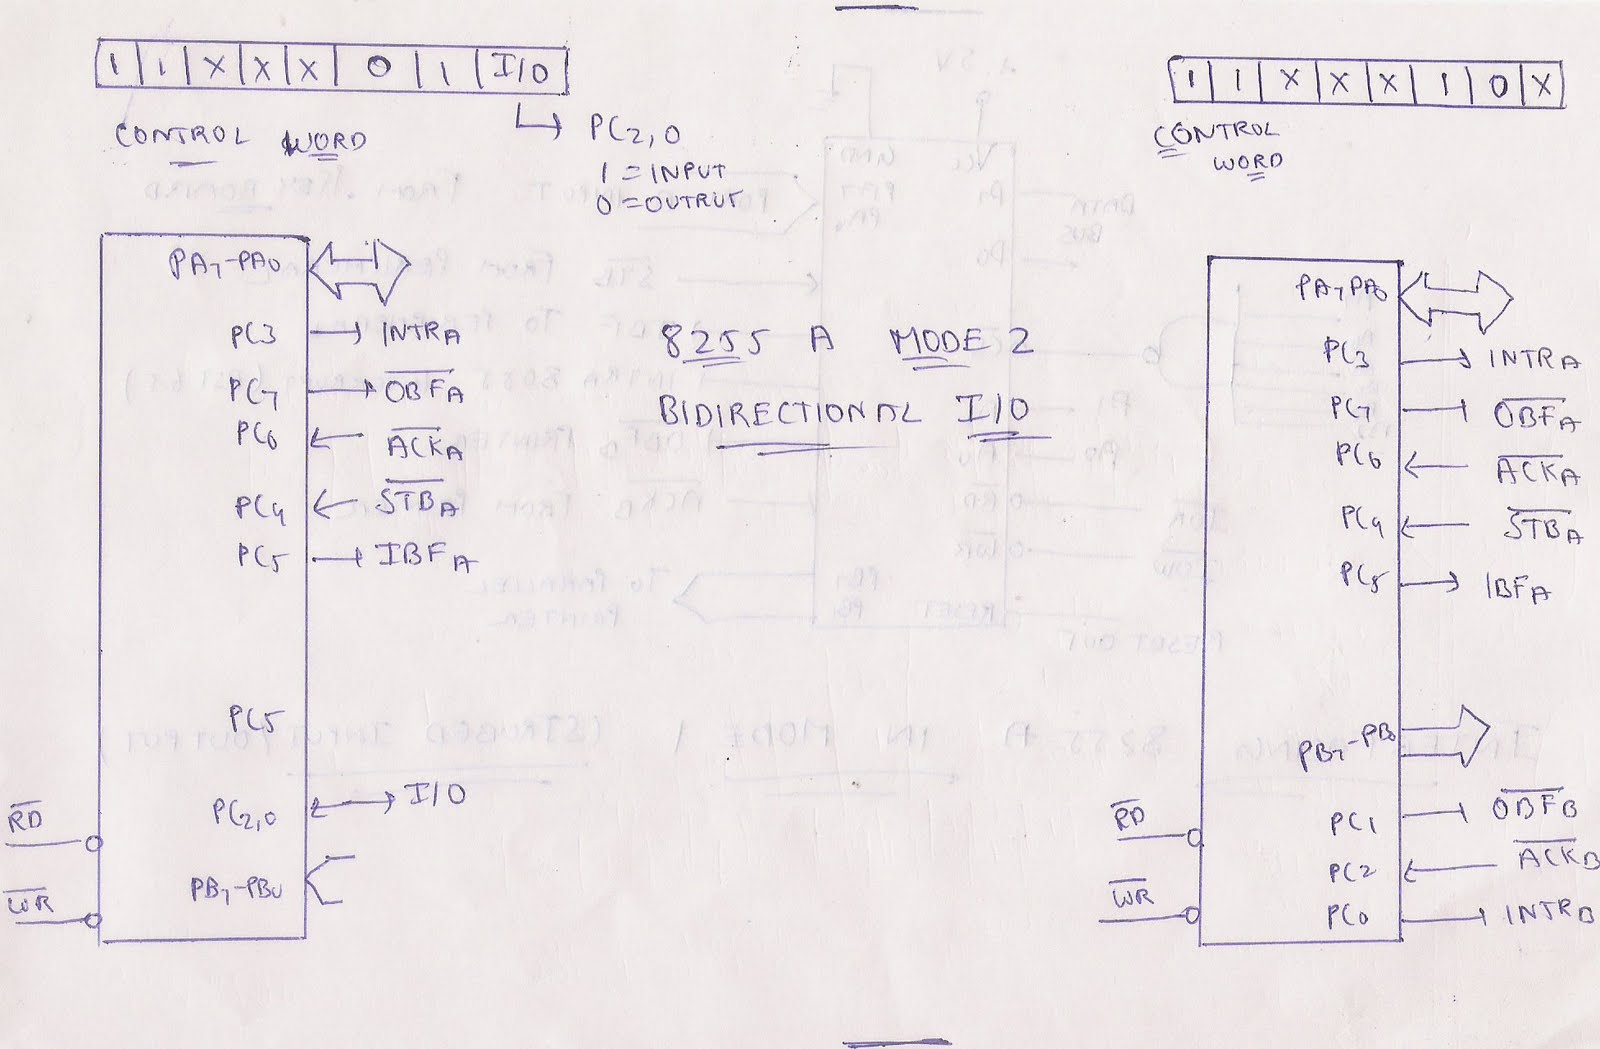 microprocessor and microcontroller  8255 mode 2